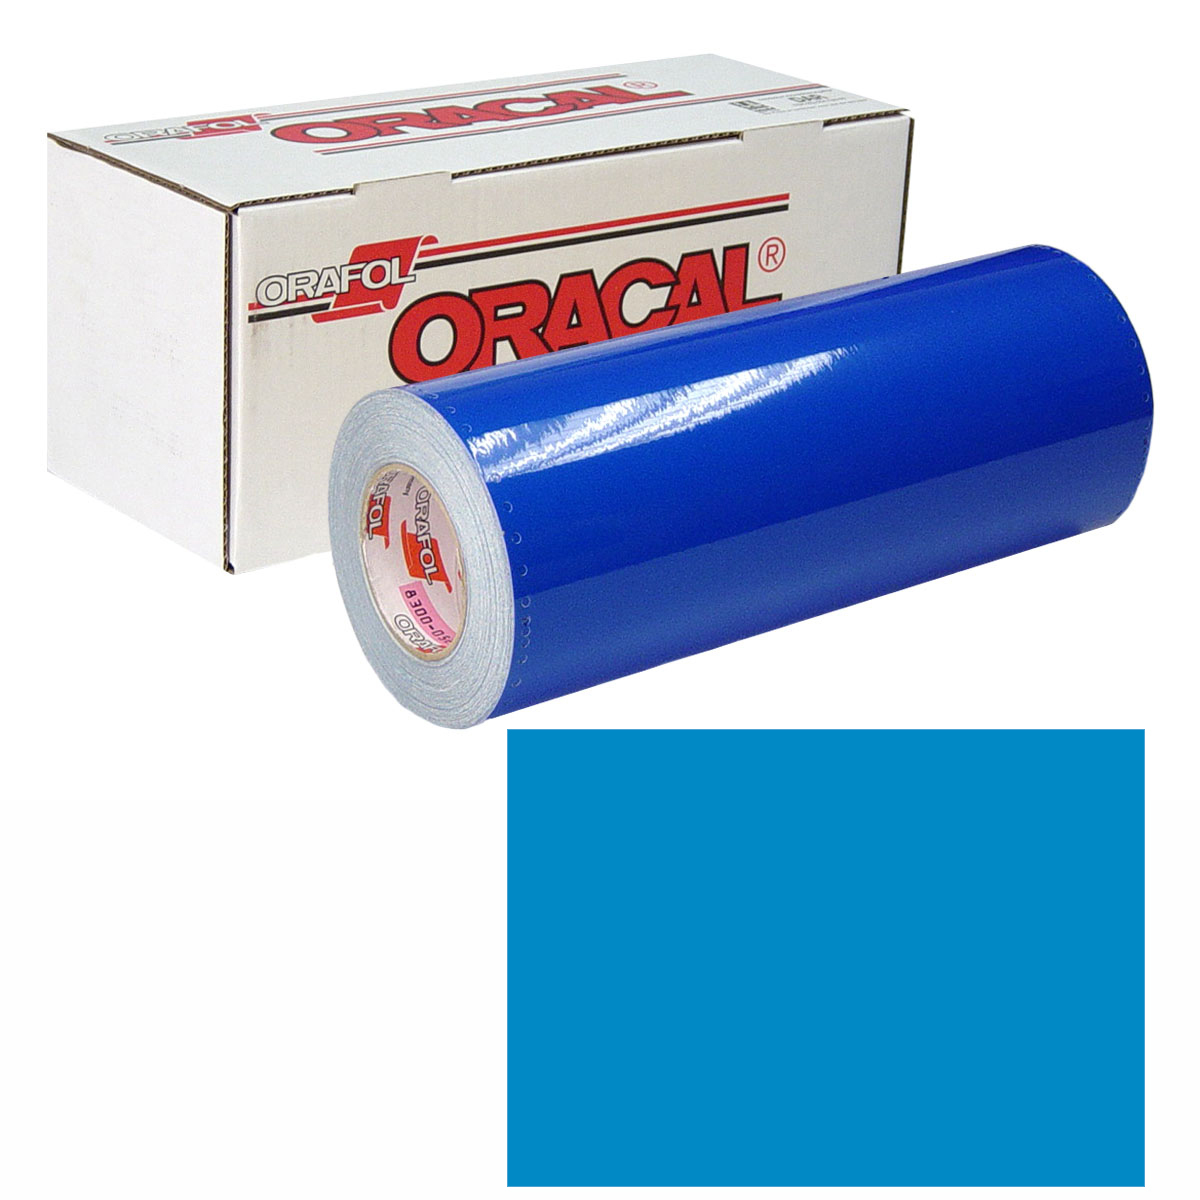 ORACAL 631 Unp 24in X 10yd 053 Light Blue